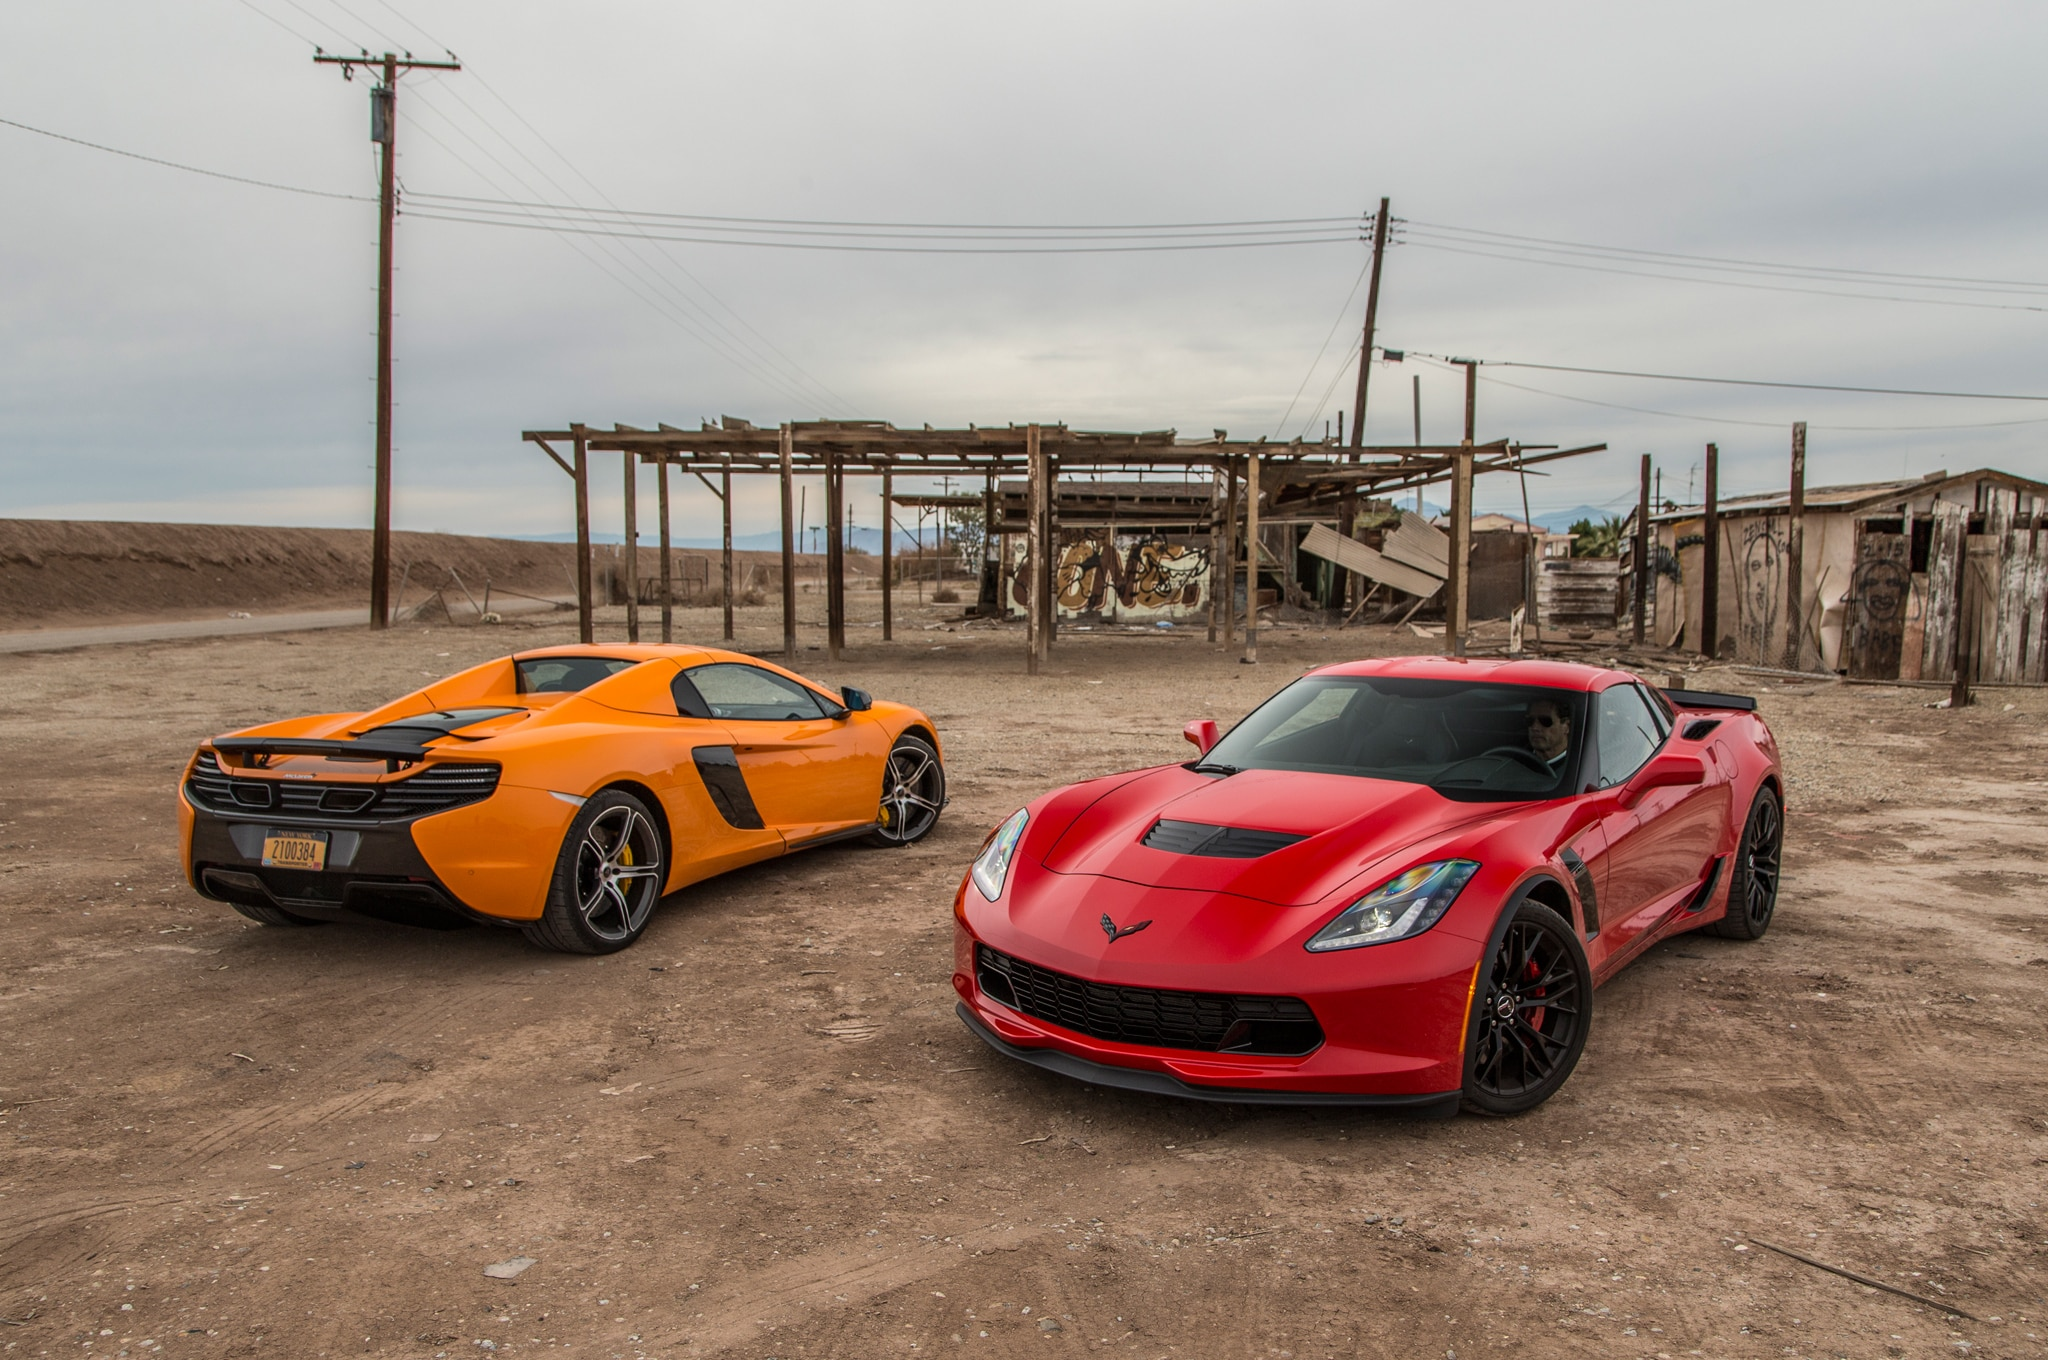 Corvette-Z06-vs-McLaren-650S-Spider-12 Mesmerizing Porsche 911 Turbo Vs Z06 Cars Trend